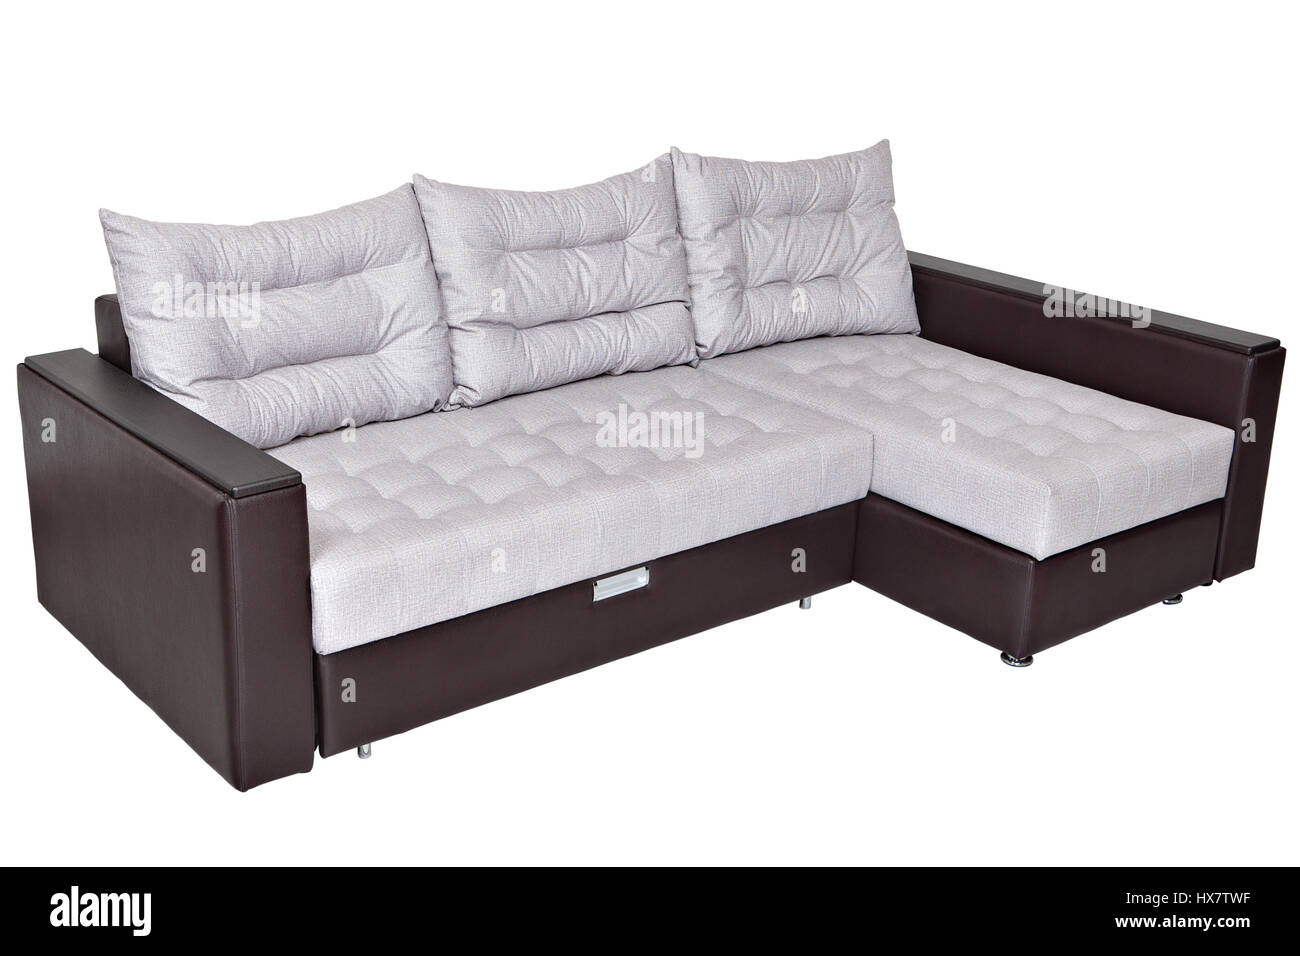 Corner Convertible Sofa Bed With Storage System, Upholstery Soft White  Fabric And Armrests Upholstered Brown Leatherette, Isolated On A White  Backgro